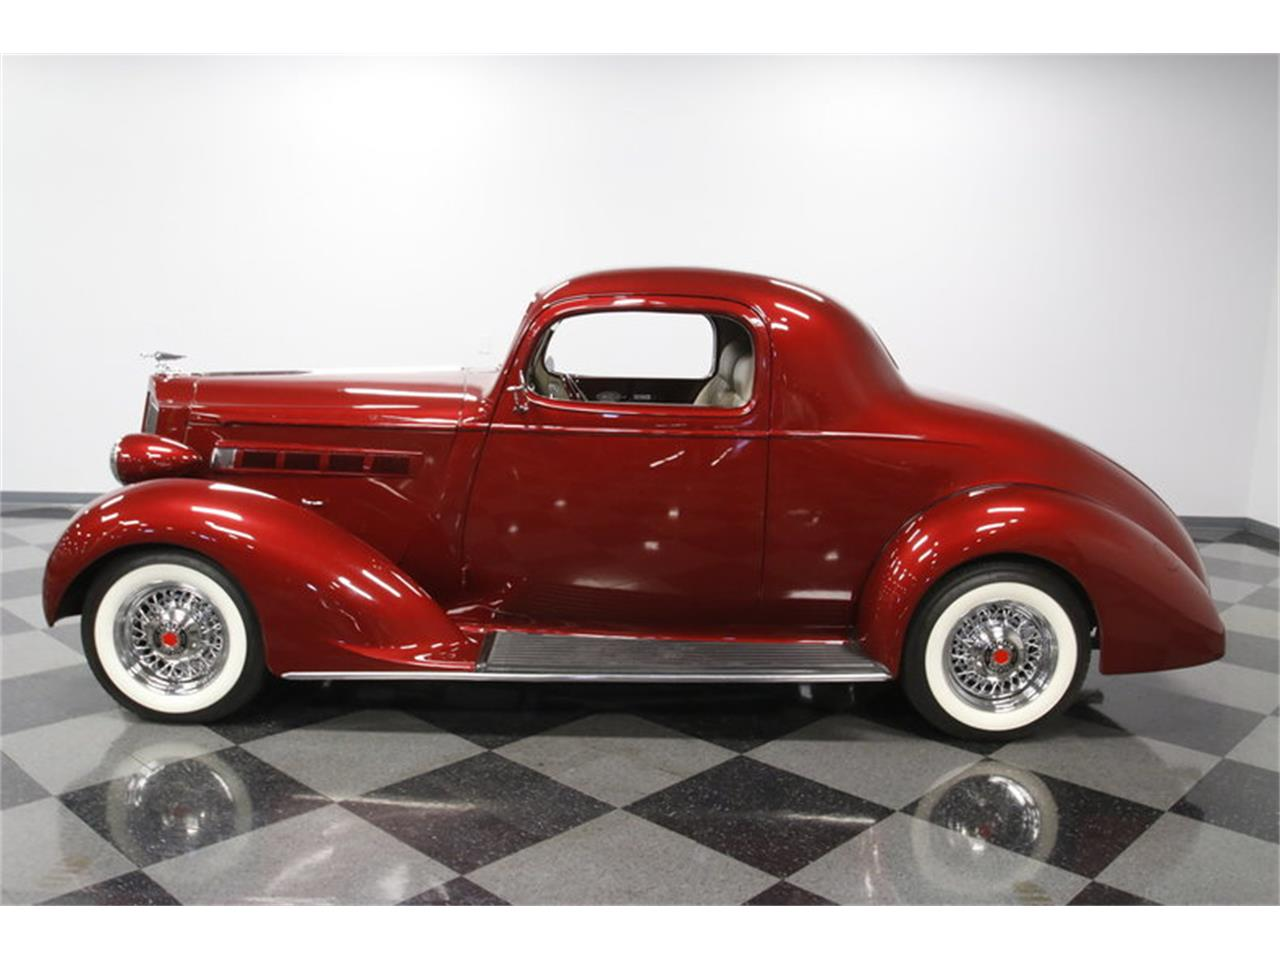 Large Picture of 1937 Packard 115 located in North Carolina - $74,995.00 - MZJZ